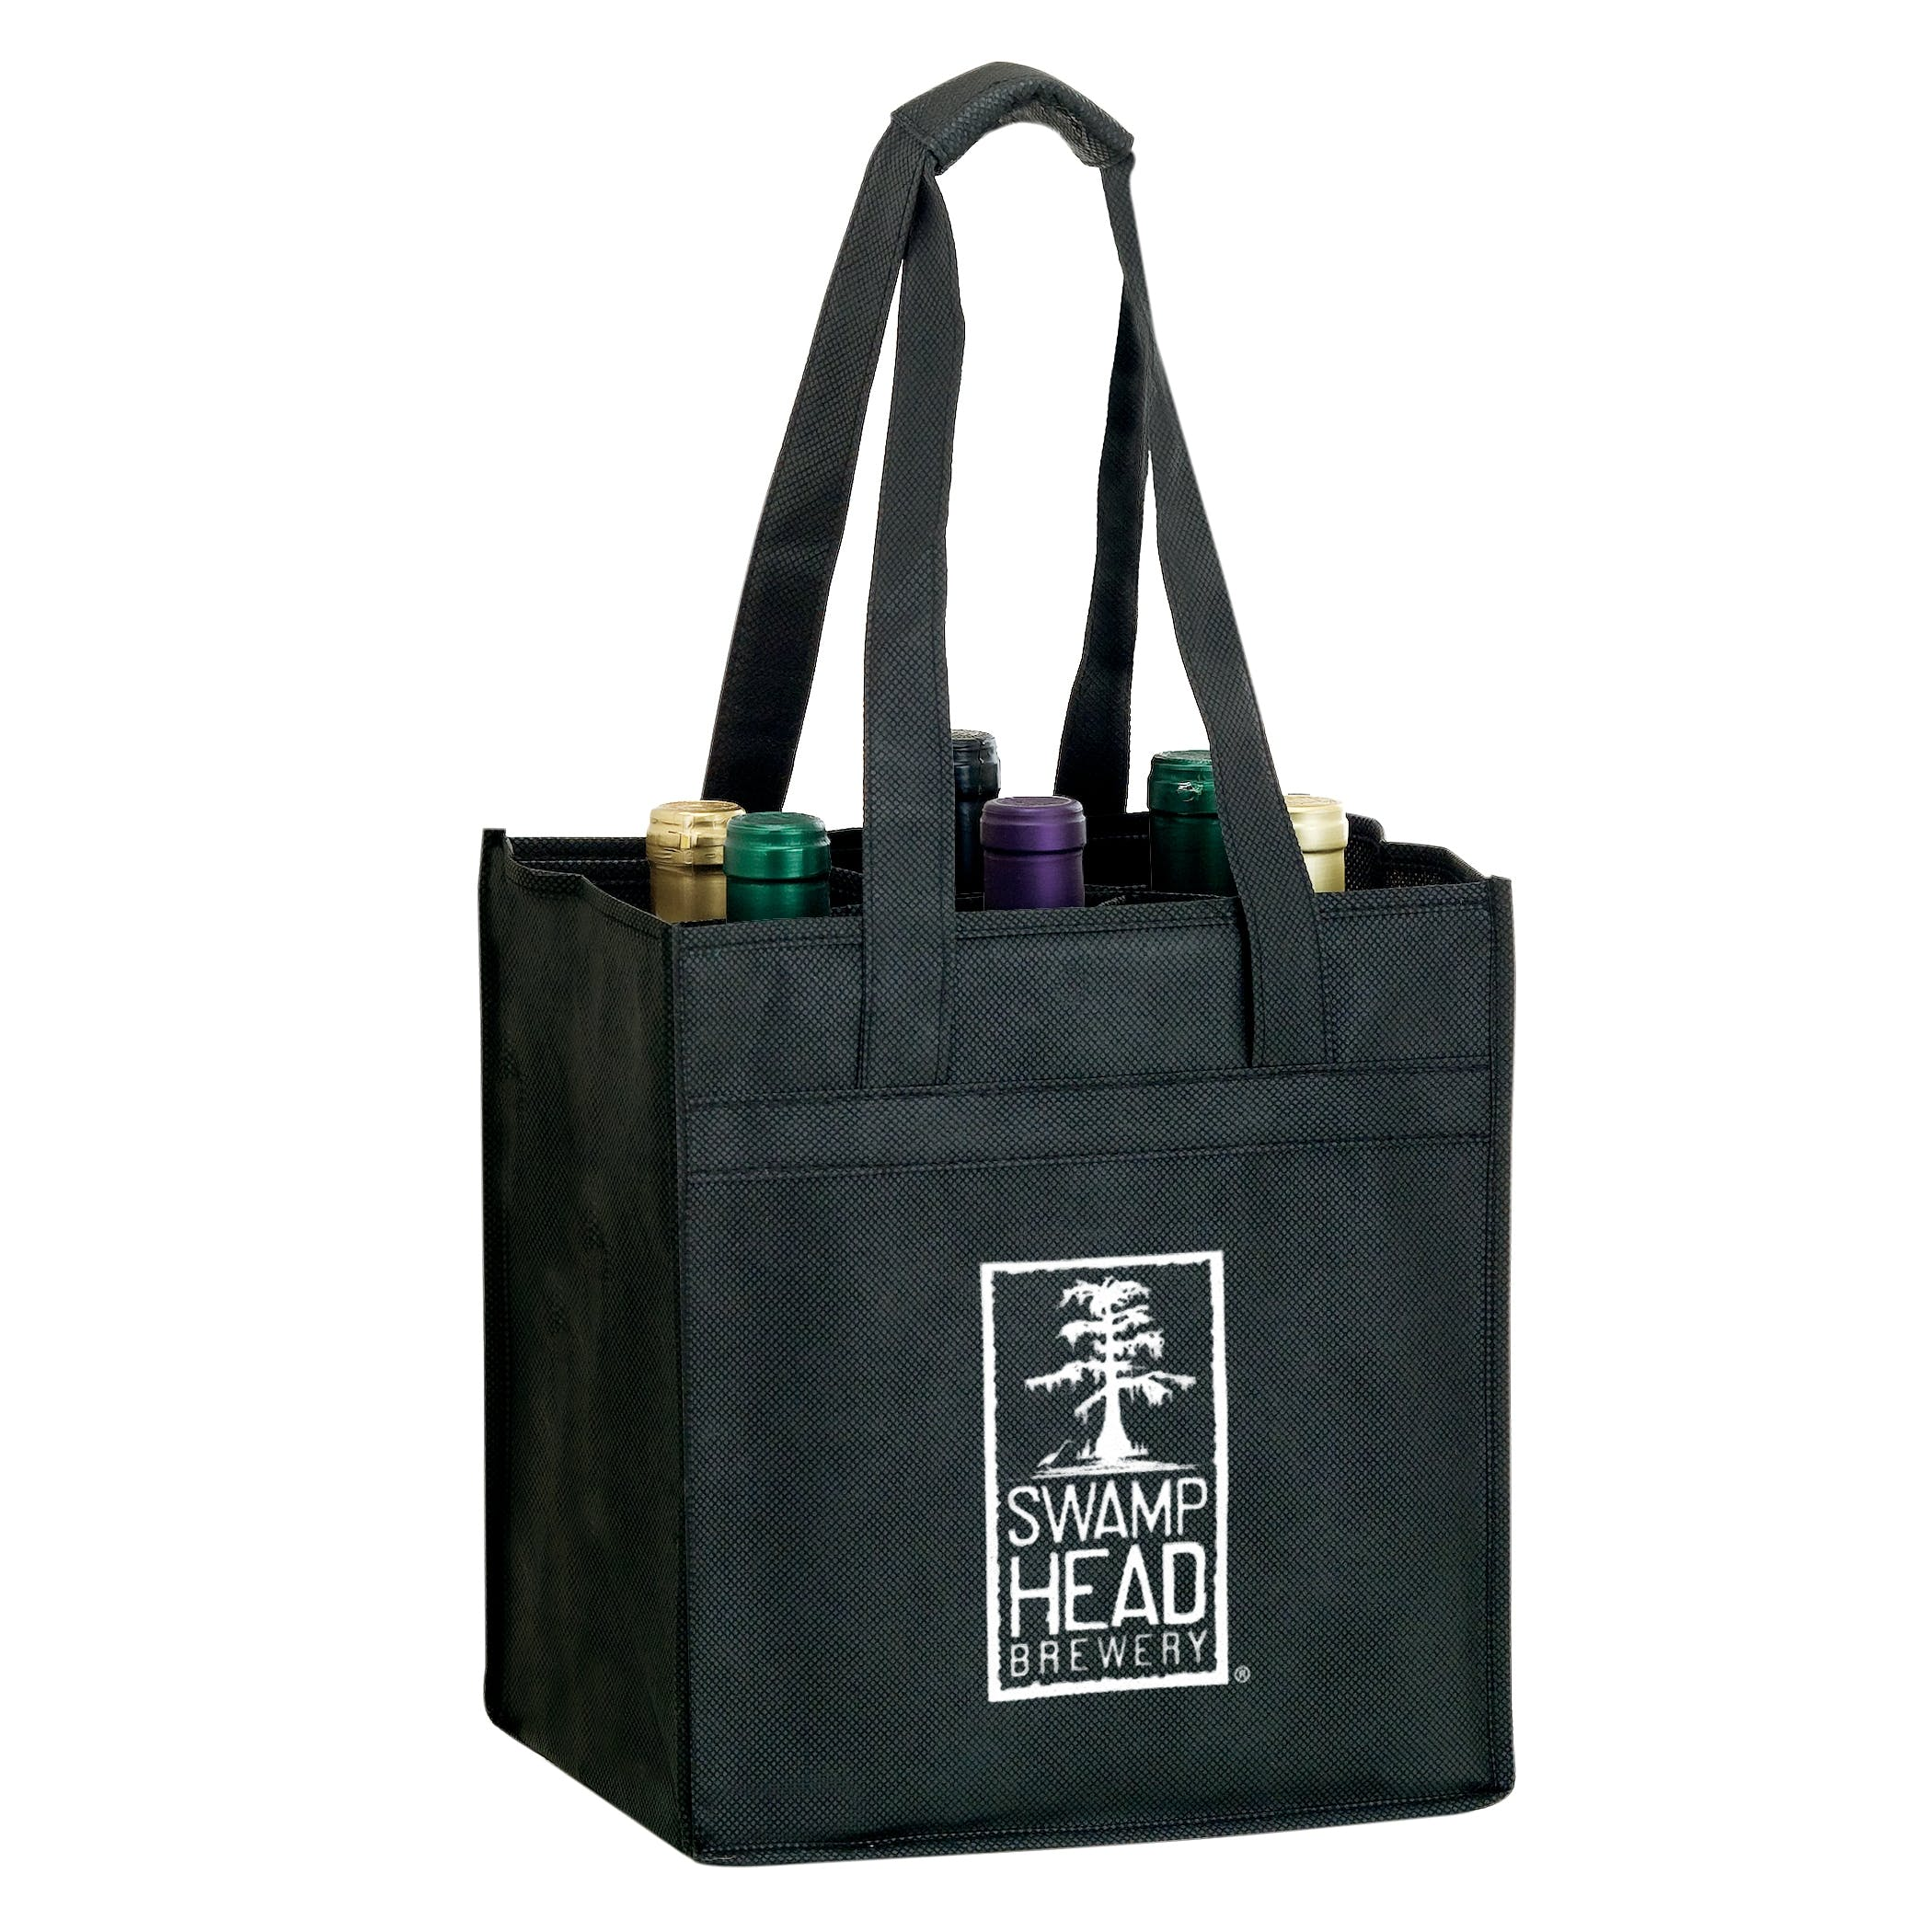 6 Bottle Wine Tote Bag sold by Freedom Branding